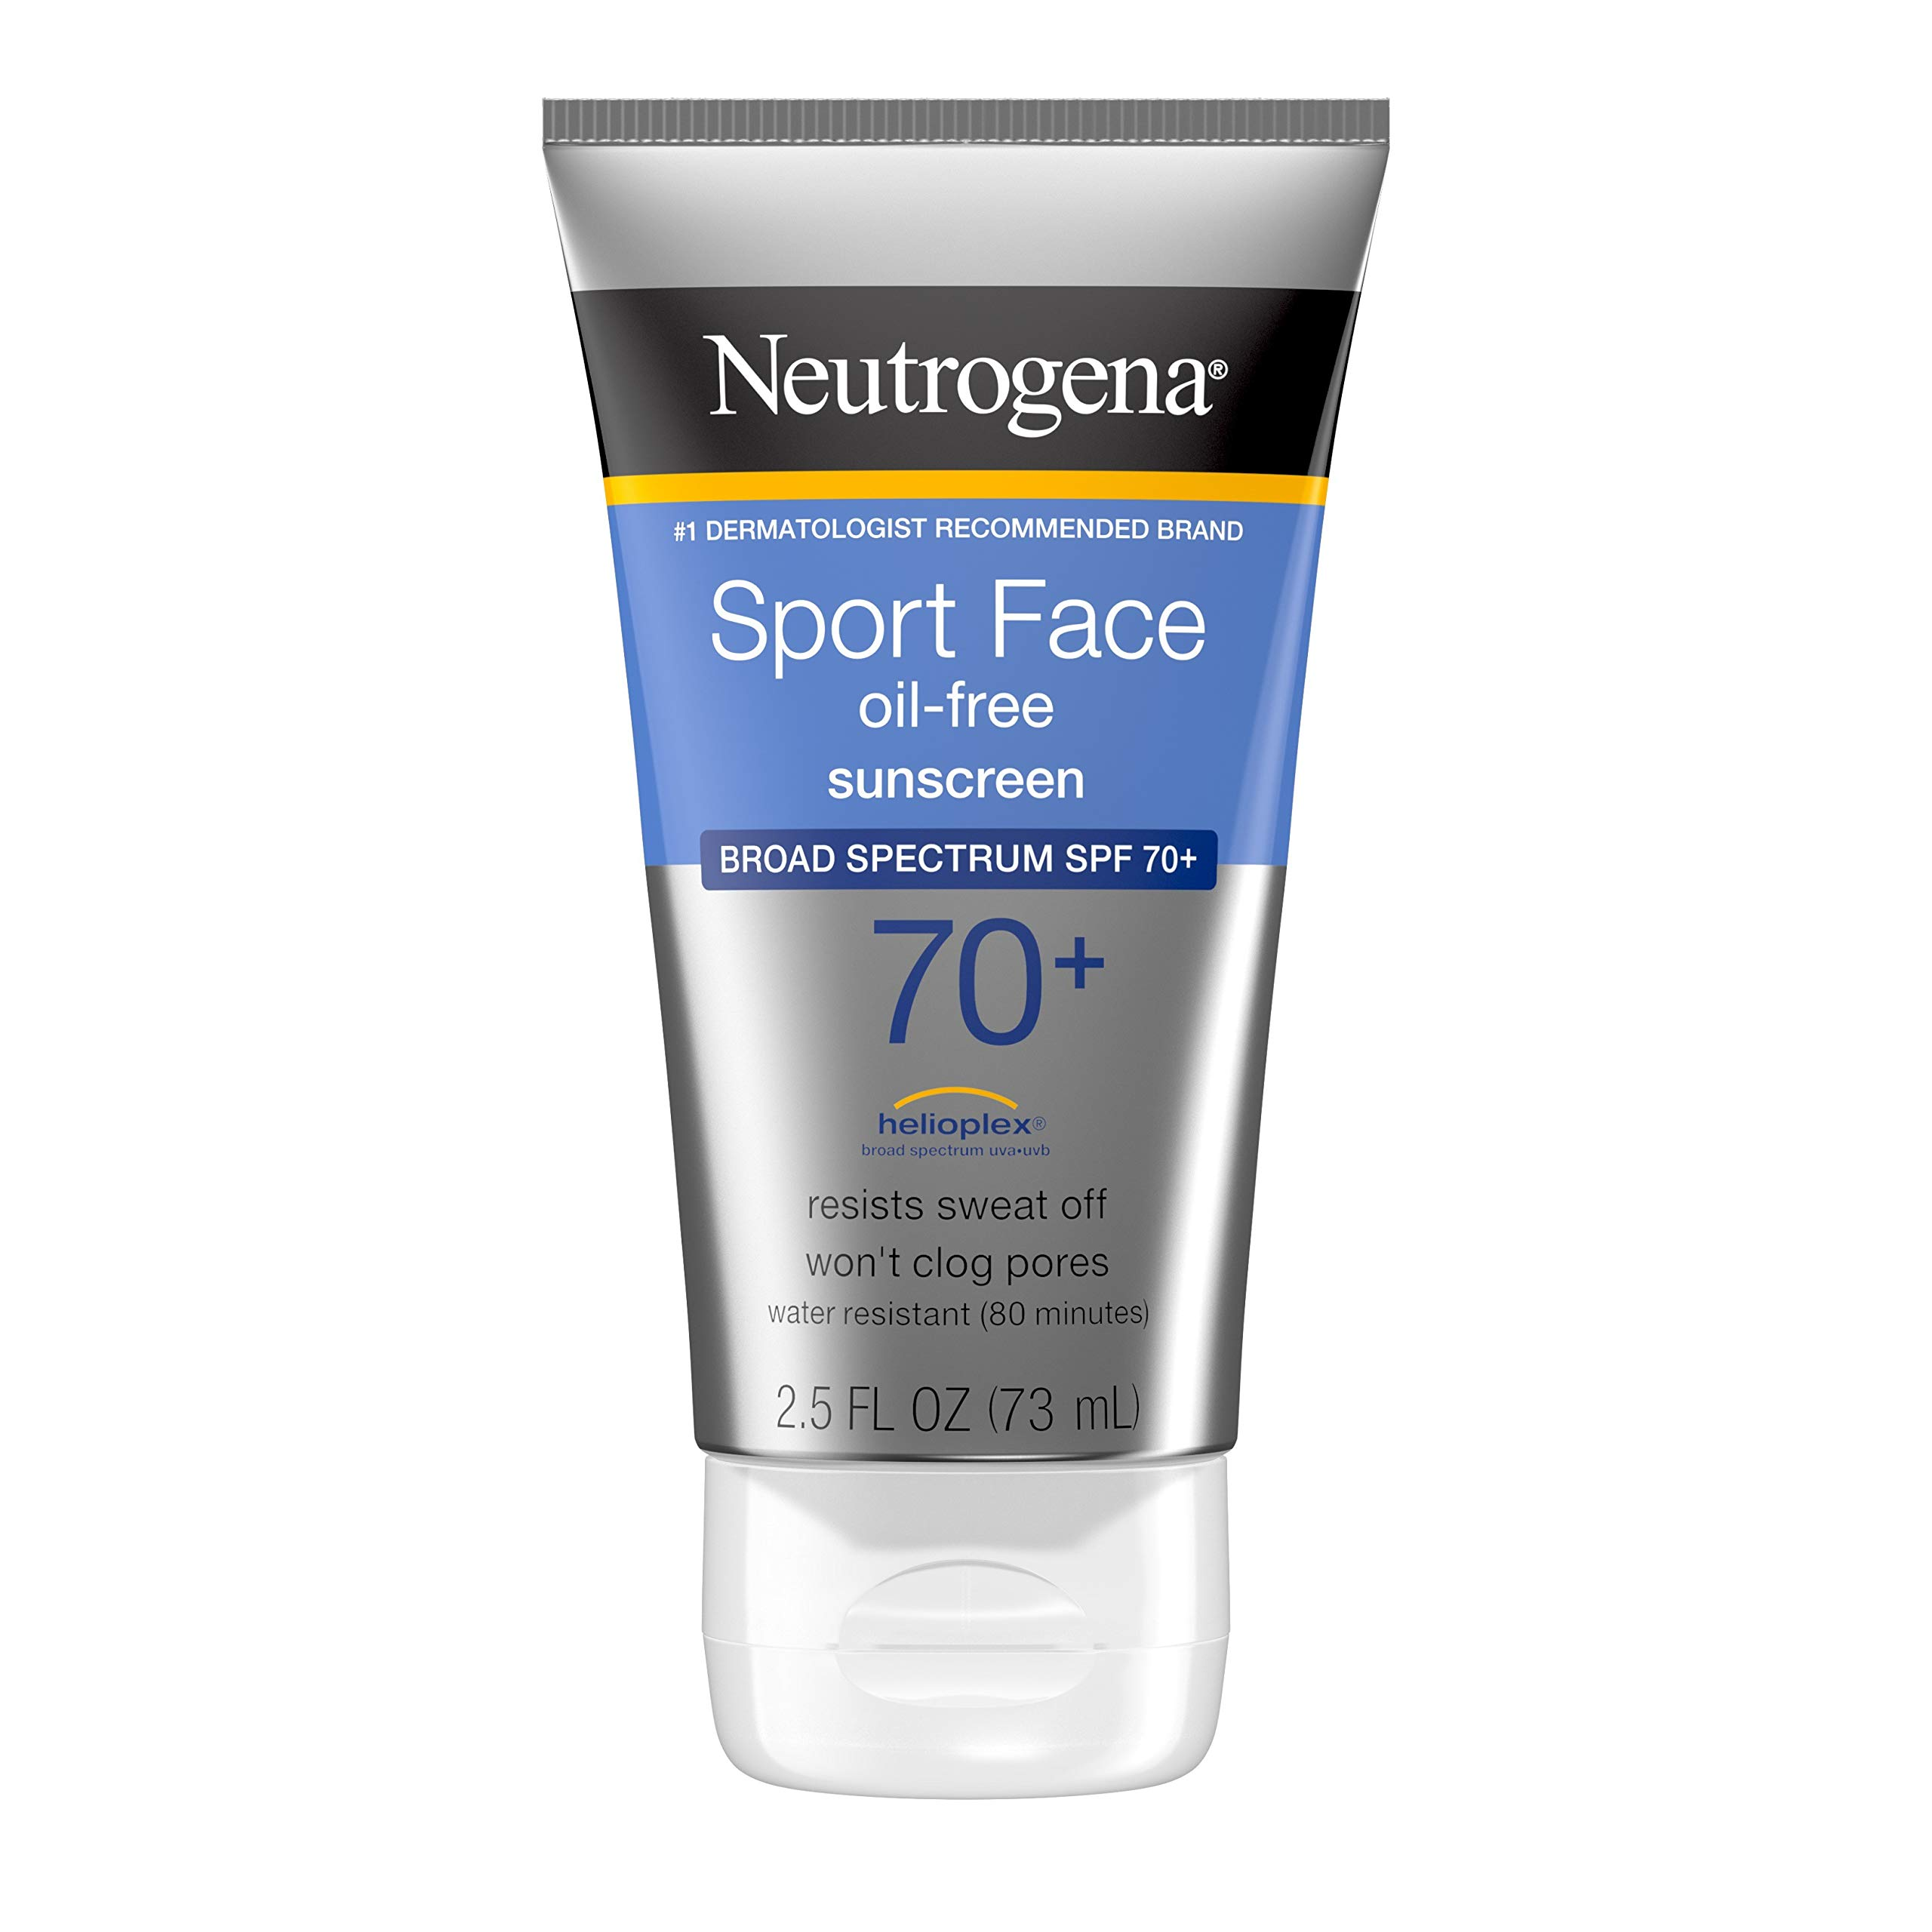 Neutrogena Sport Face Sunscreen SPF 70+, Oil-Free Facial Sunscreen Lotion with Broad Spectrum UVA/UVB Sun Protection, Sweat-Resistant & Water-Resistant, 2.5 fl. oz